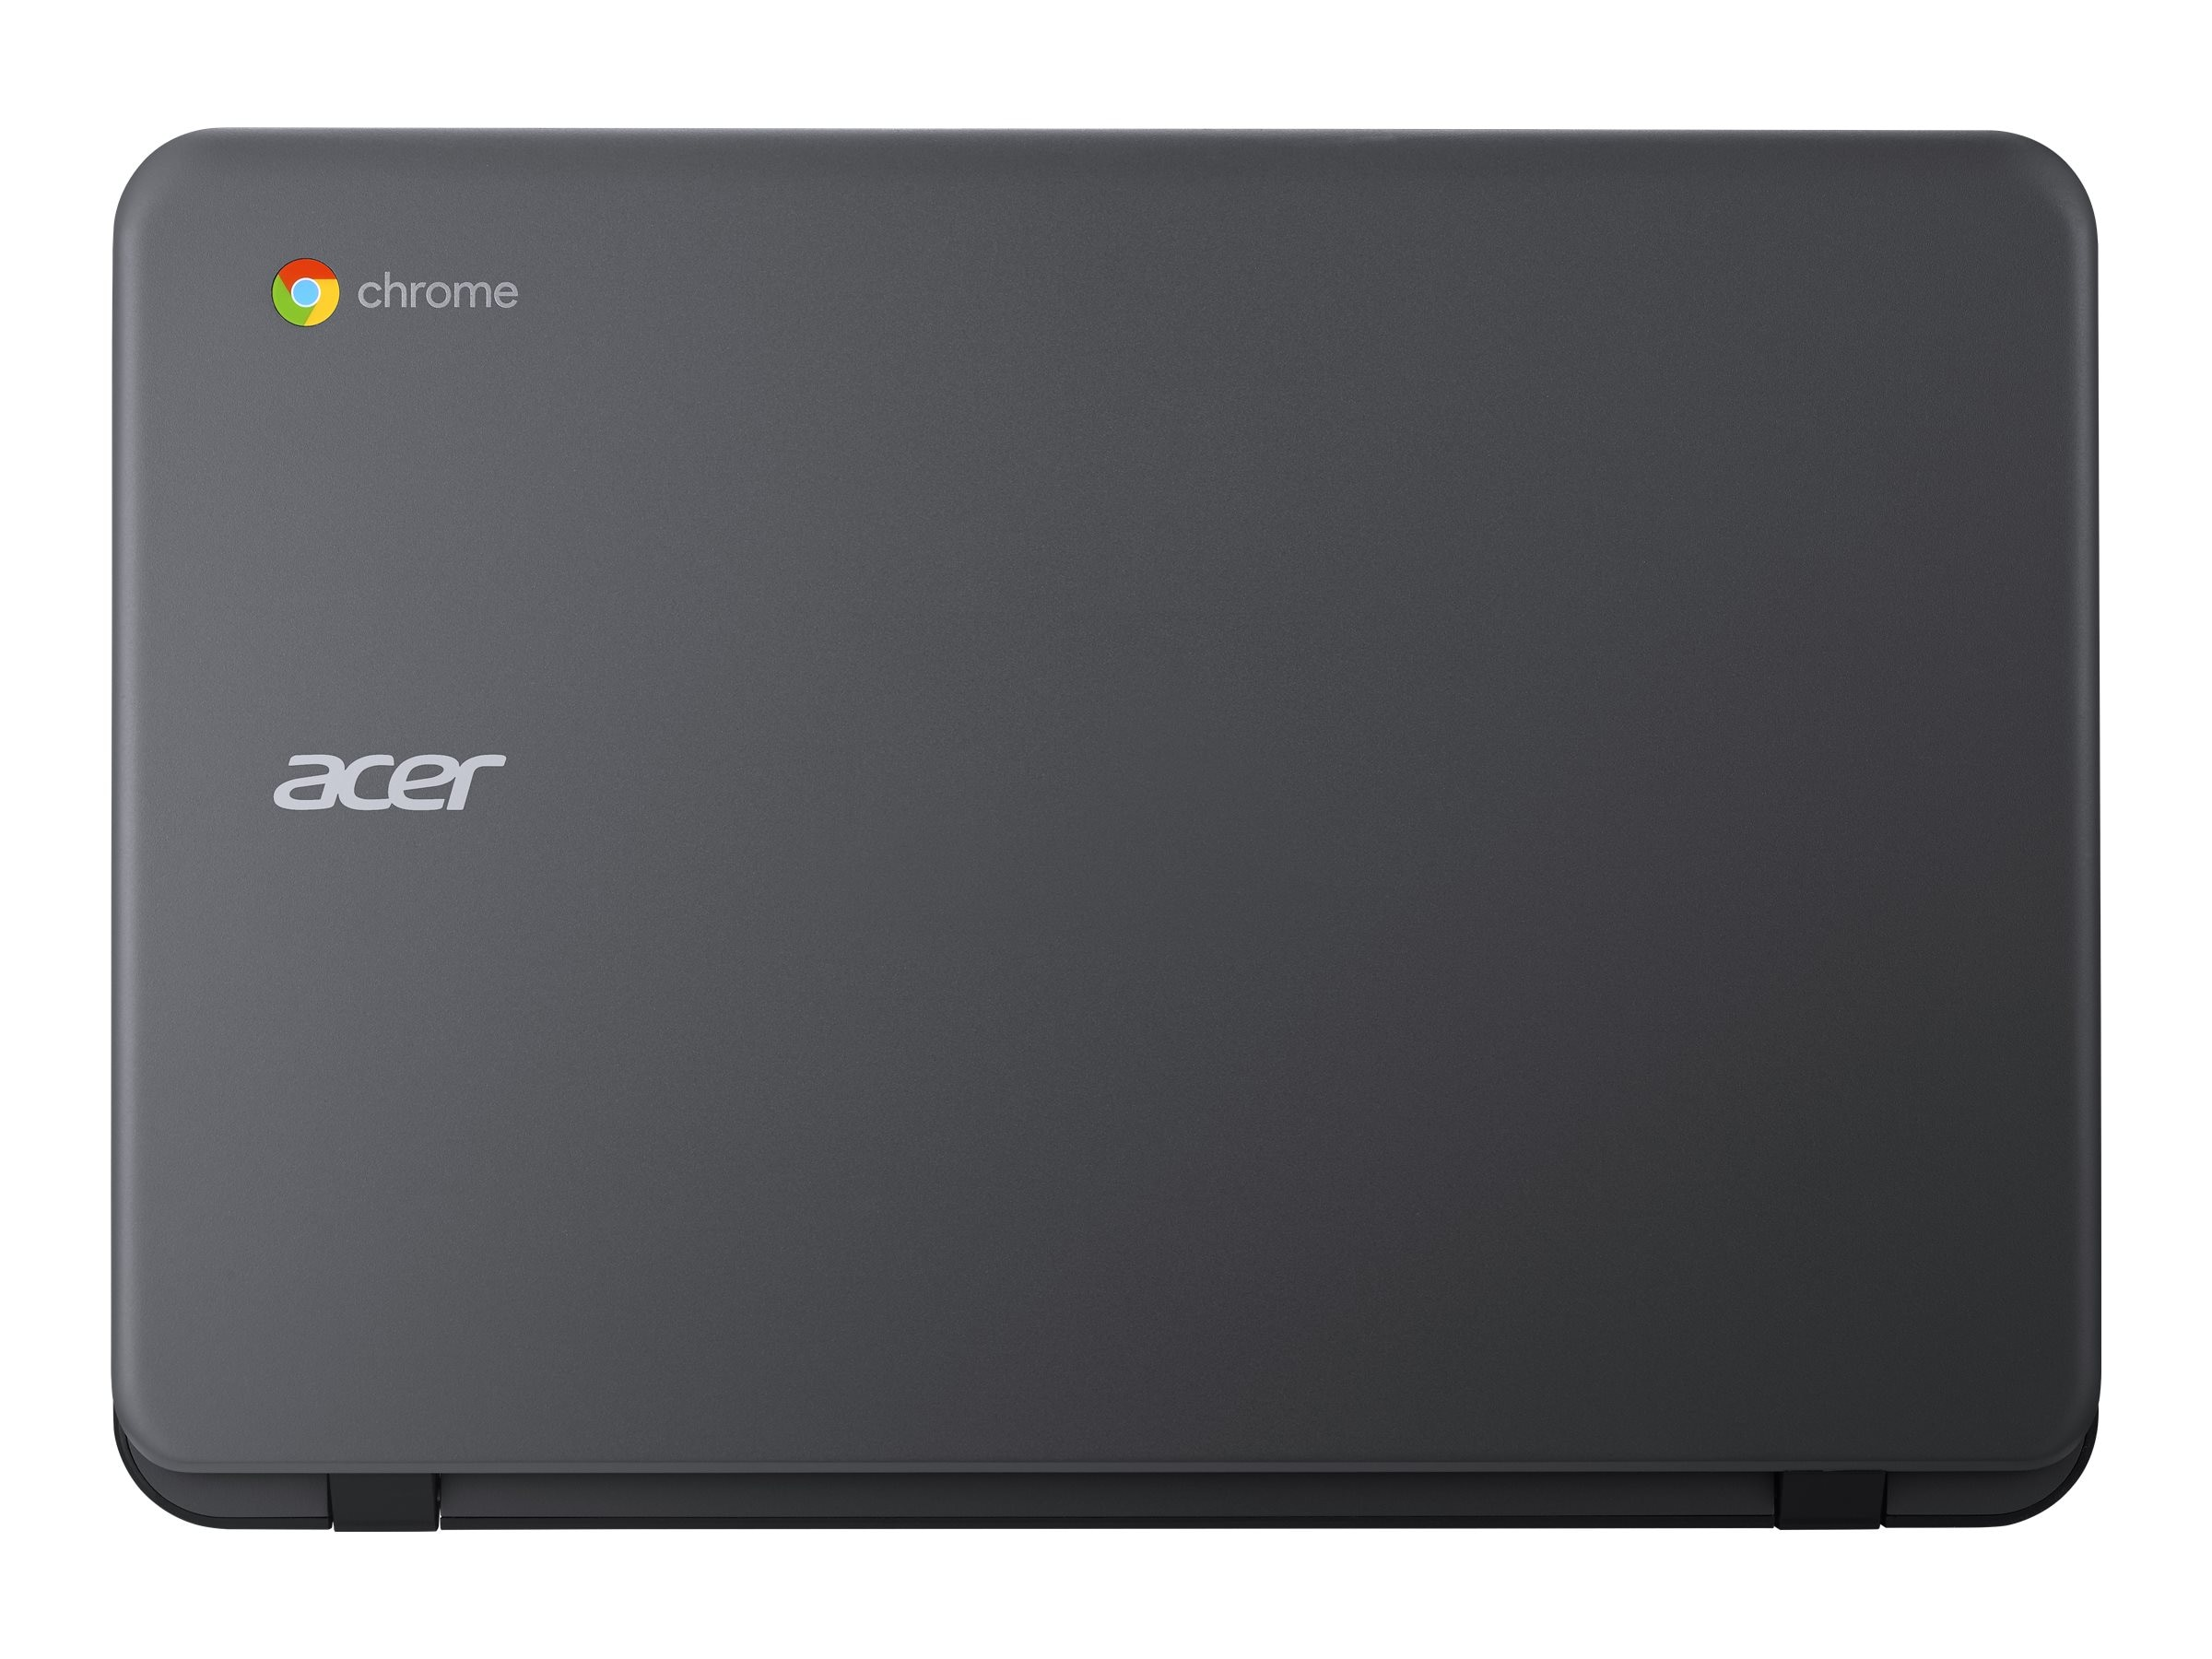 Acer Chromebook C731-C8VE Celeron N3060 1.6GHz 4GB 16GB ac BT WC 3C 11.6 HD Chrome, NX.GM8AA.001